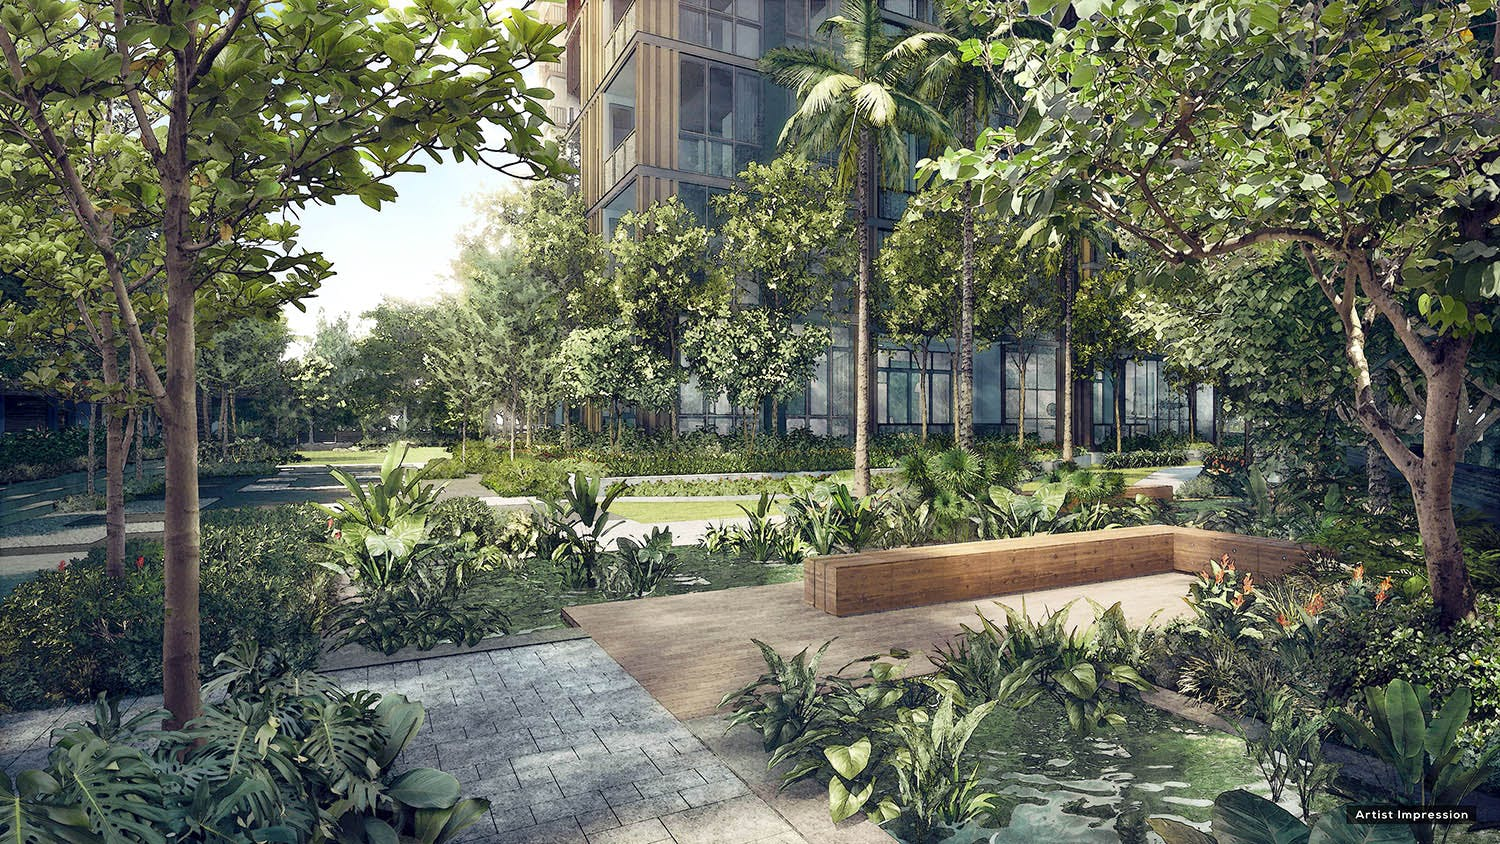 Be surrounded by lush at Martin Modern, with green scenery even in the heart of the city.